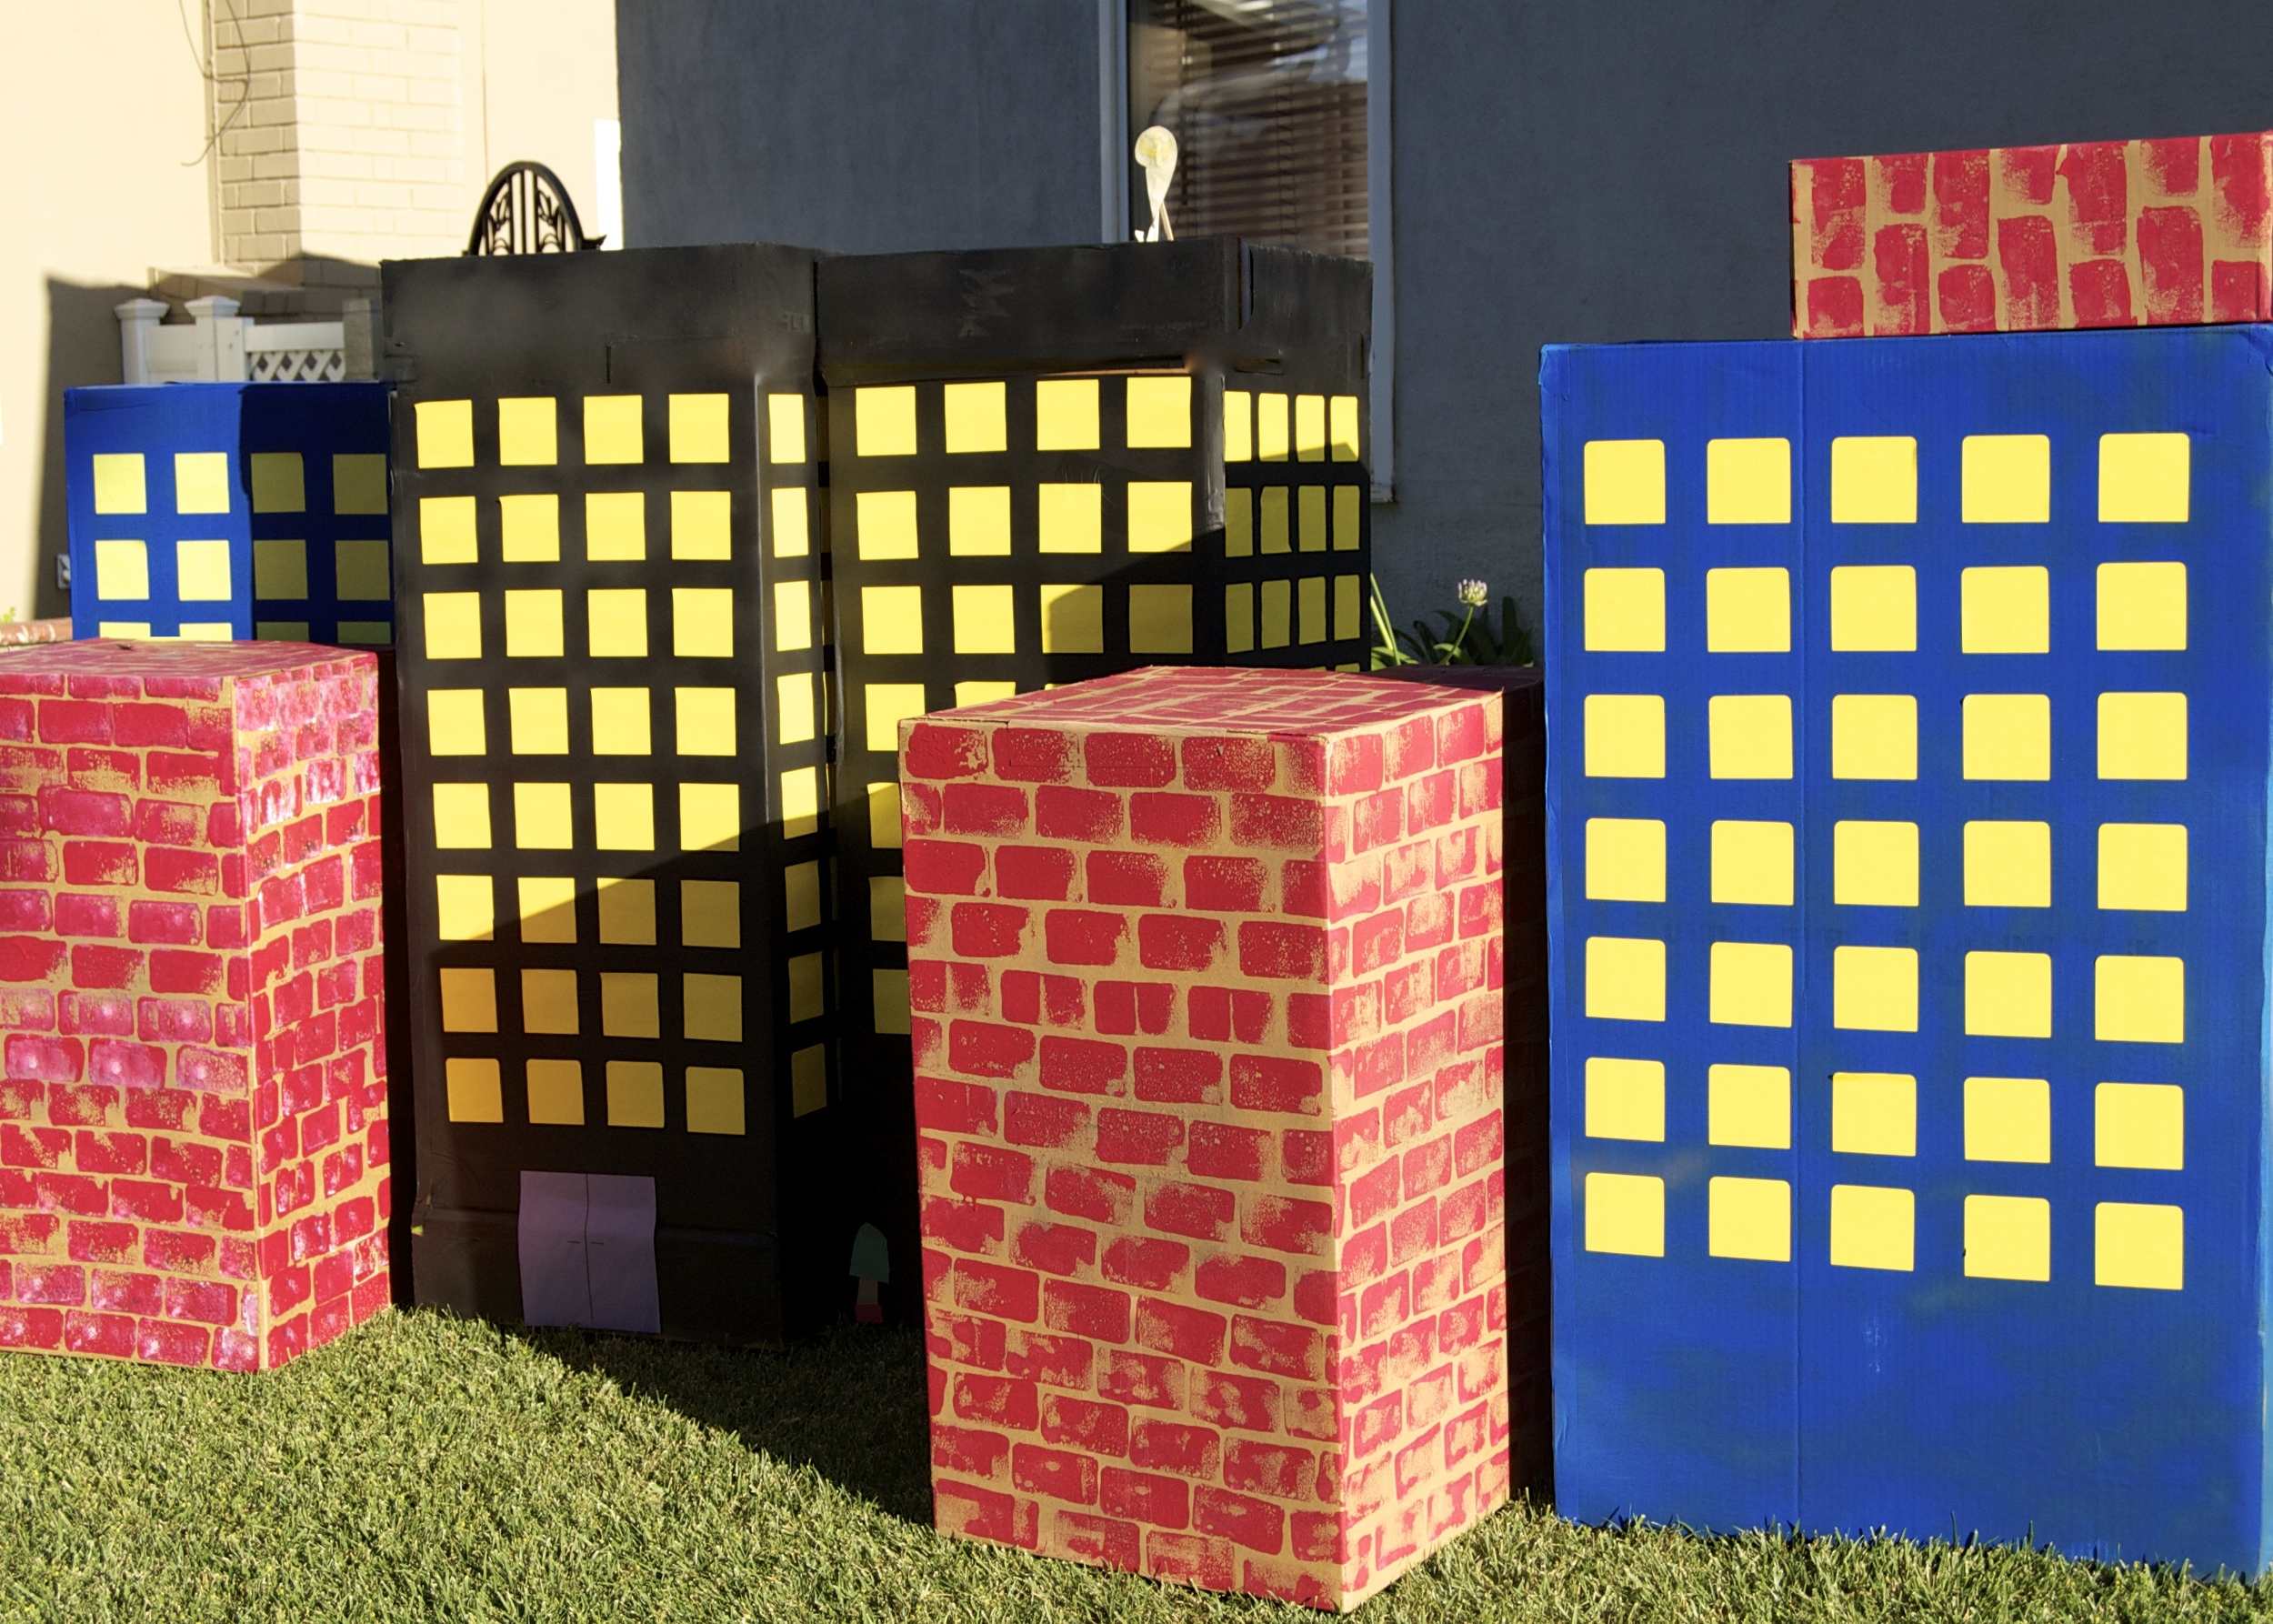 I used spray paint to make the blue and black buildings. These were large, sturdy boxes I found on the side of the road. With a little spray paint and some Post-It Notes, they were transformed for the  Superhero Party .